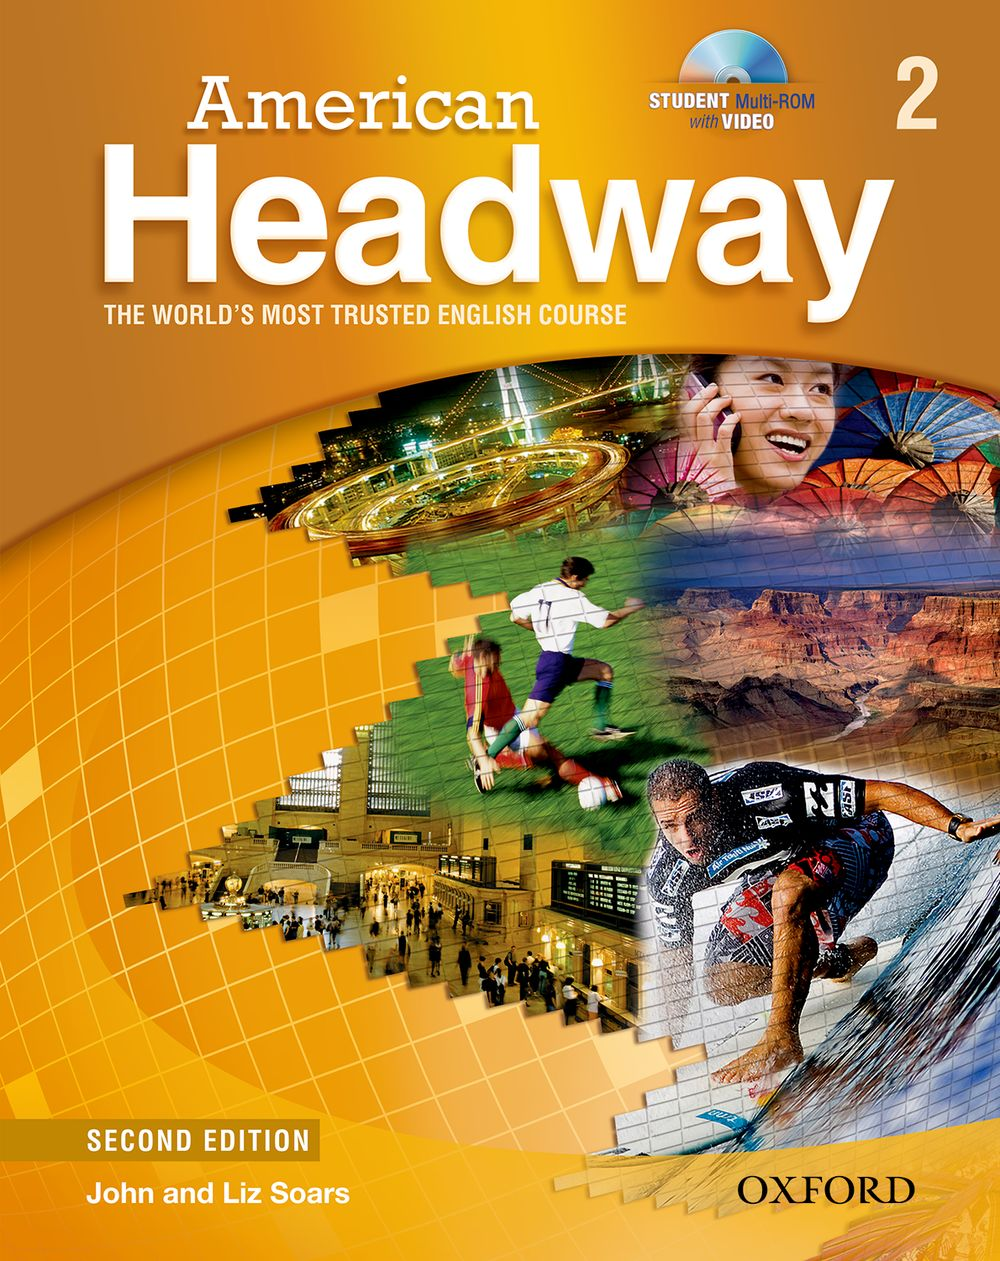 American Headway: Student Book with Student Practice MultiROM Level 2